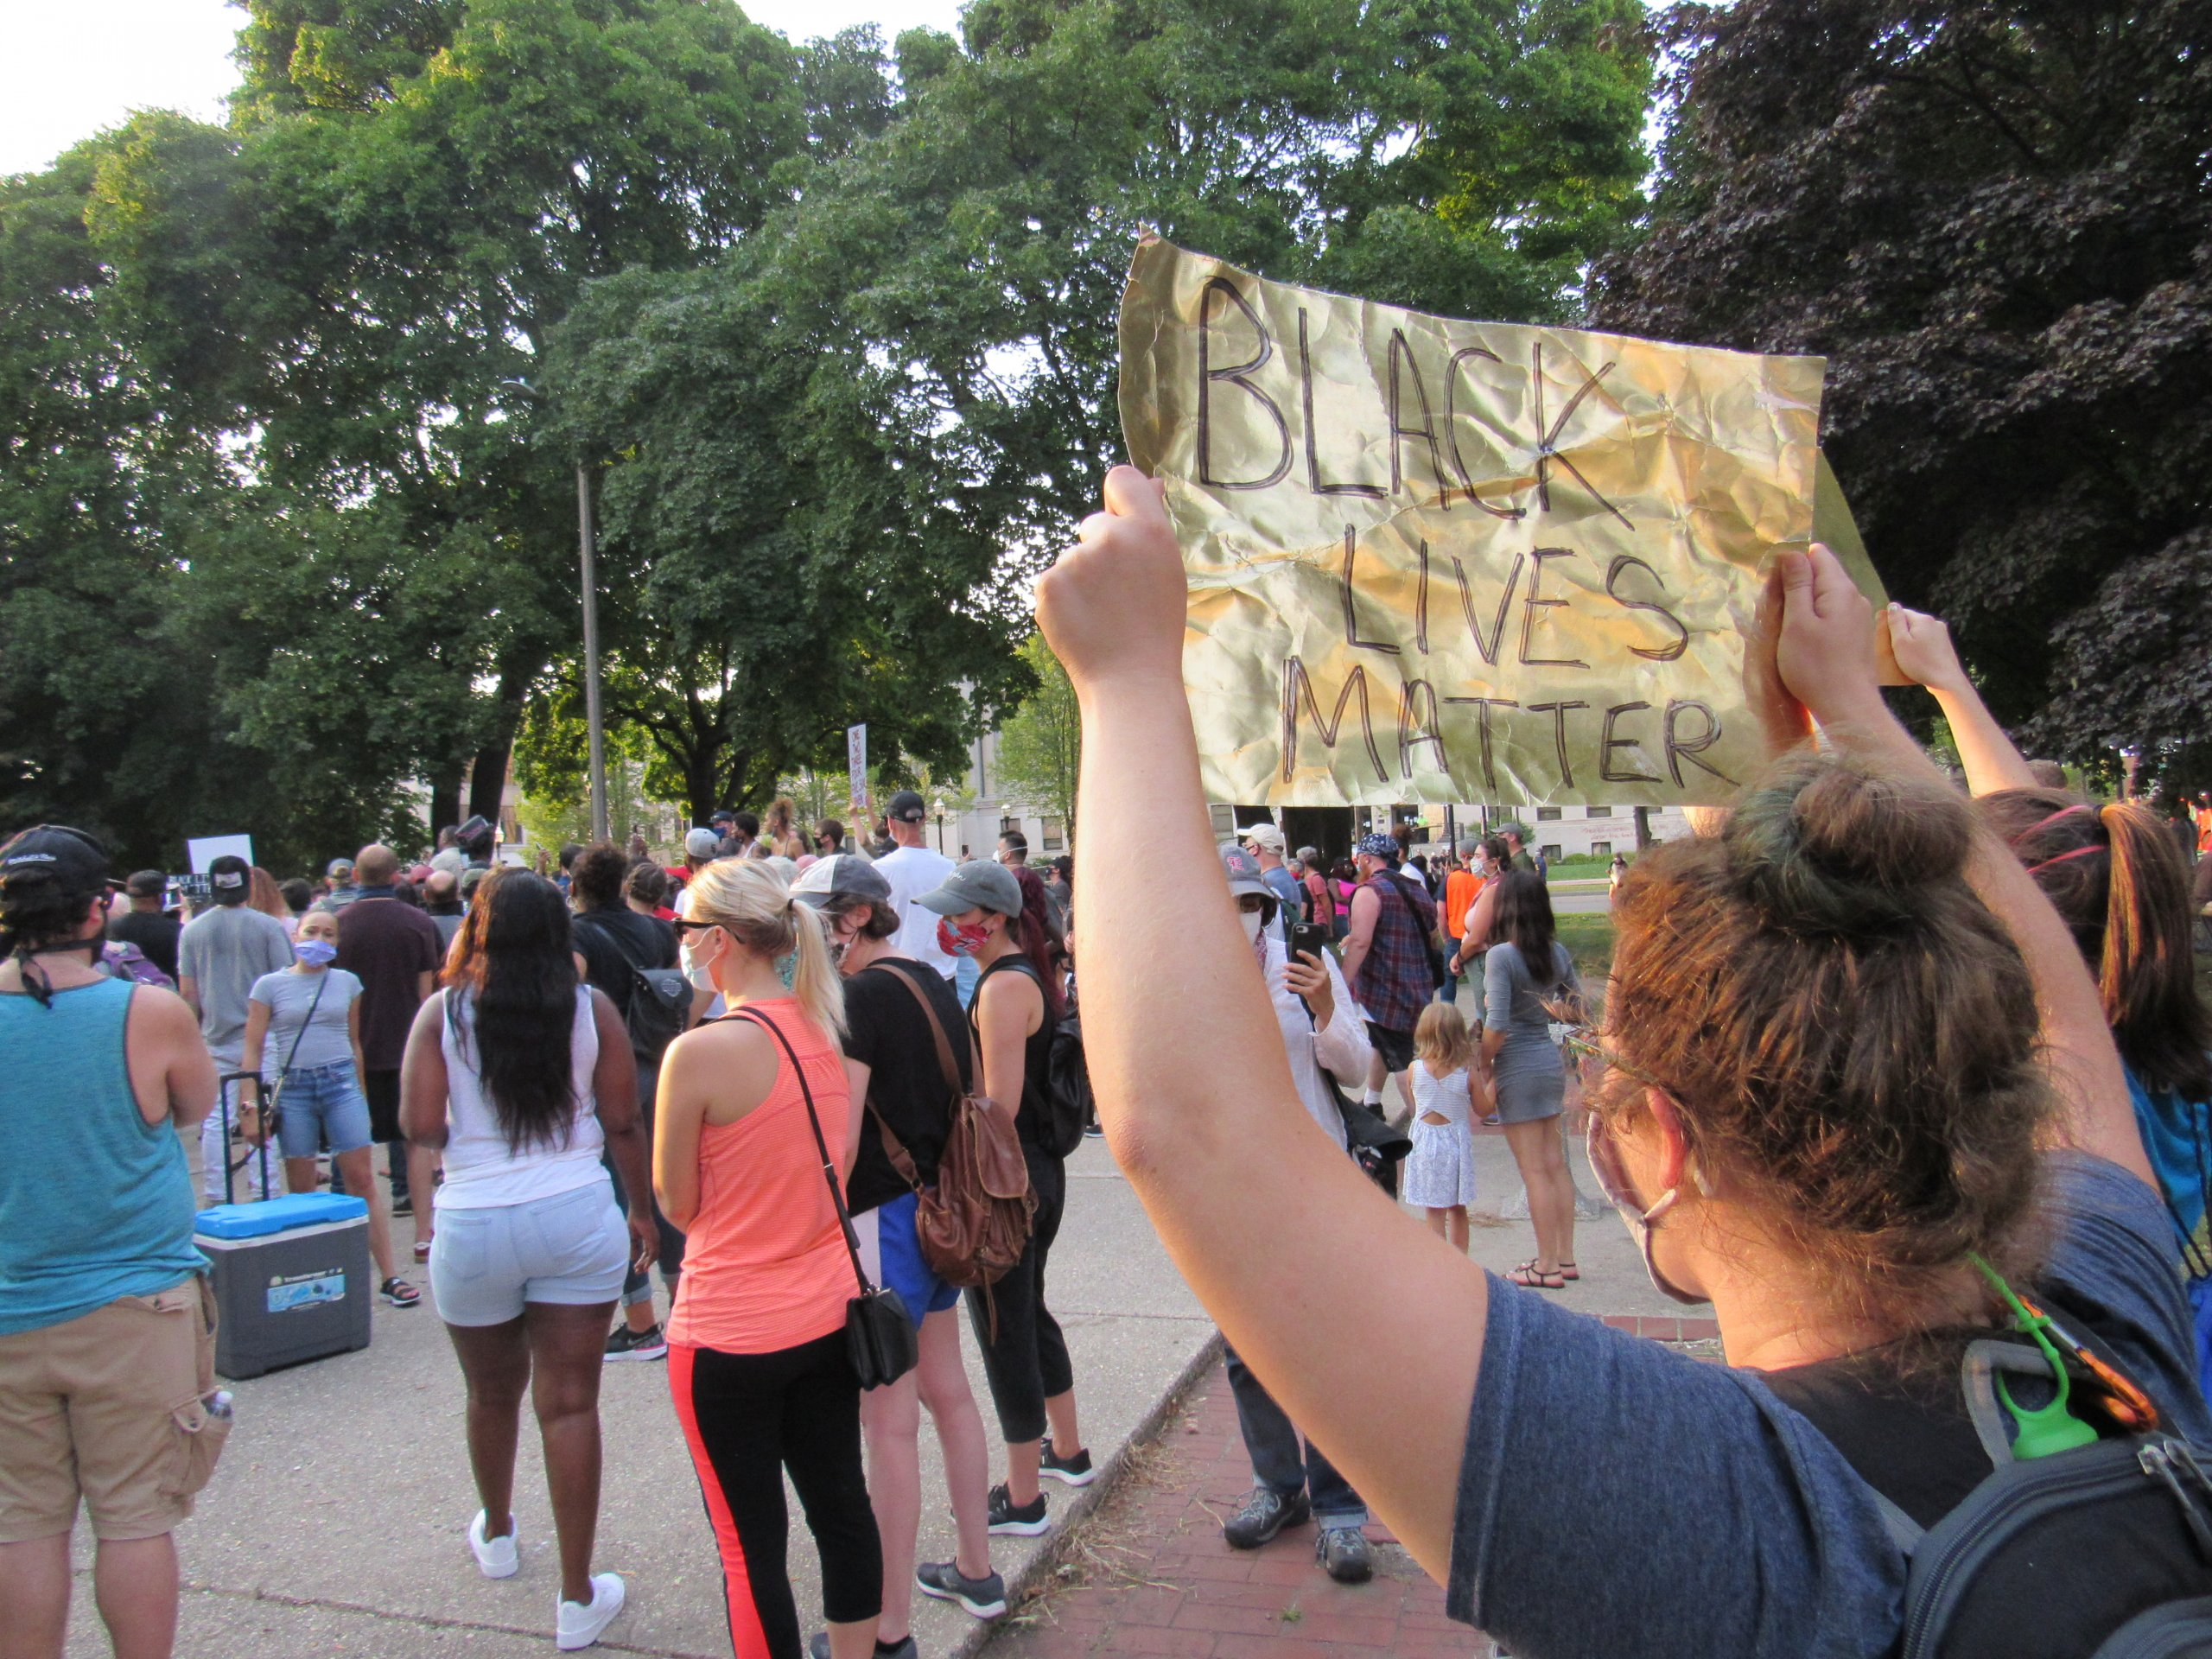 Protesters gather in Kenosha the second night of protests on August 24th, 2020. This was before the clashes with police later that night. (Photo by Isiah Holmes)